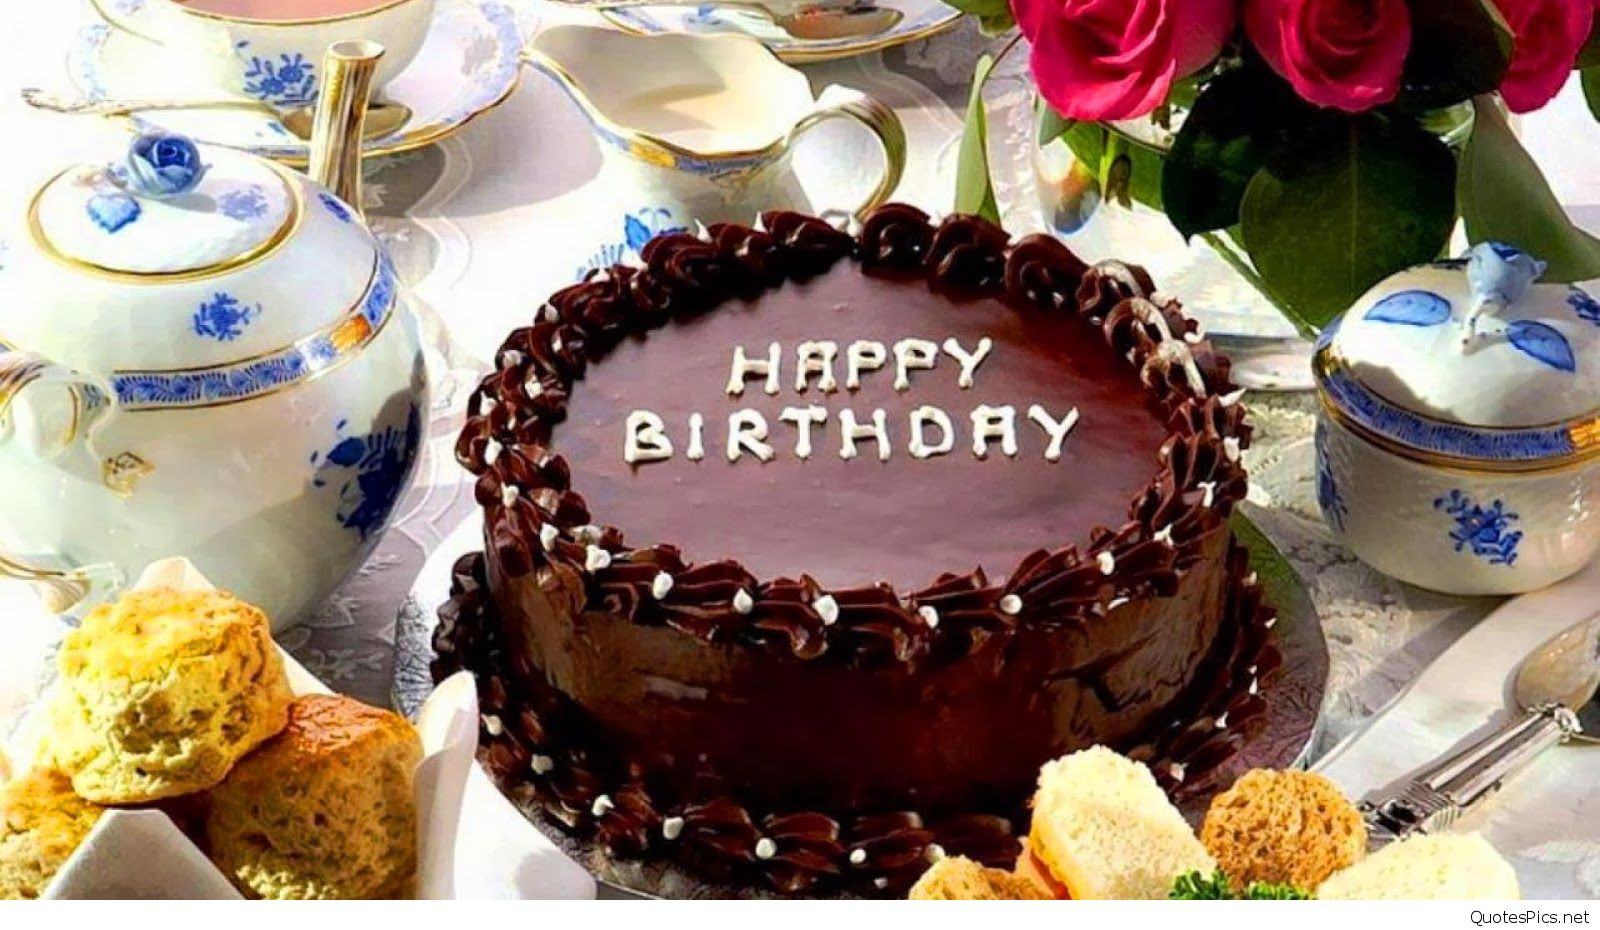 Best ideas about Happy Birthday Choco Cake . Save or Pin Amazing Happy Birthday cake wallpapers hd Now.